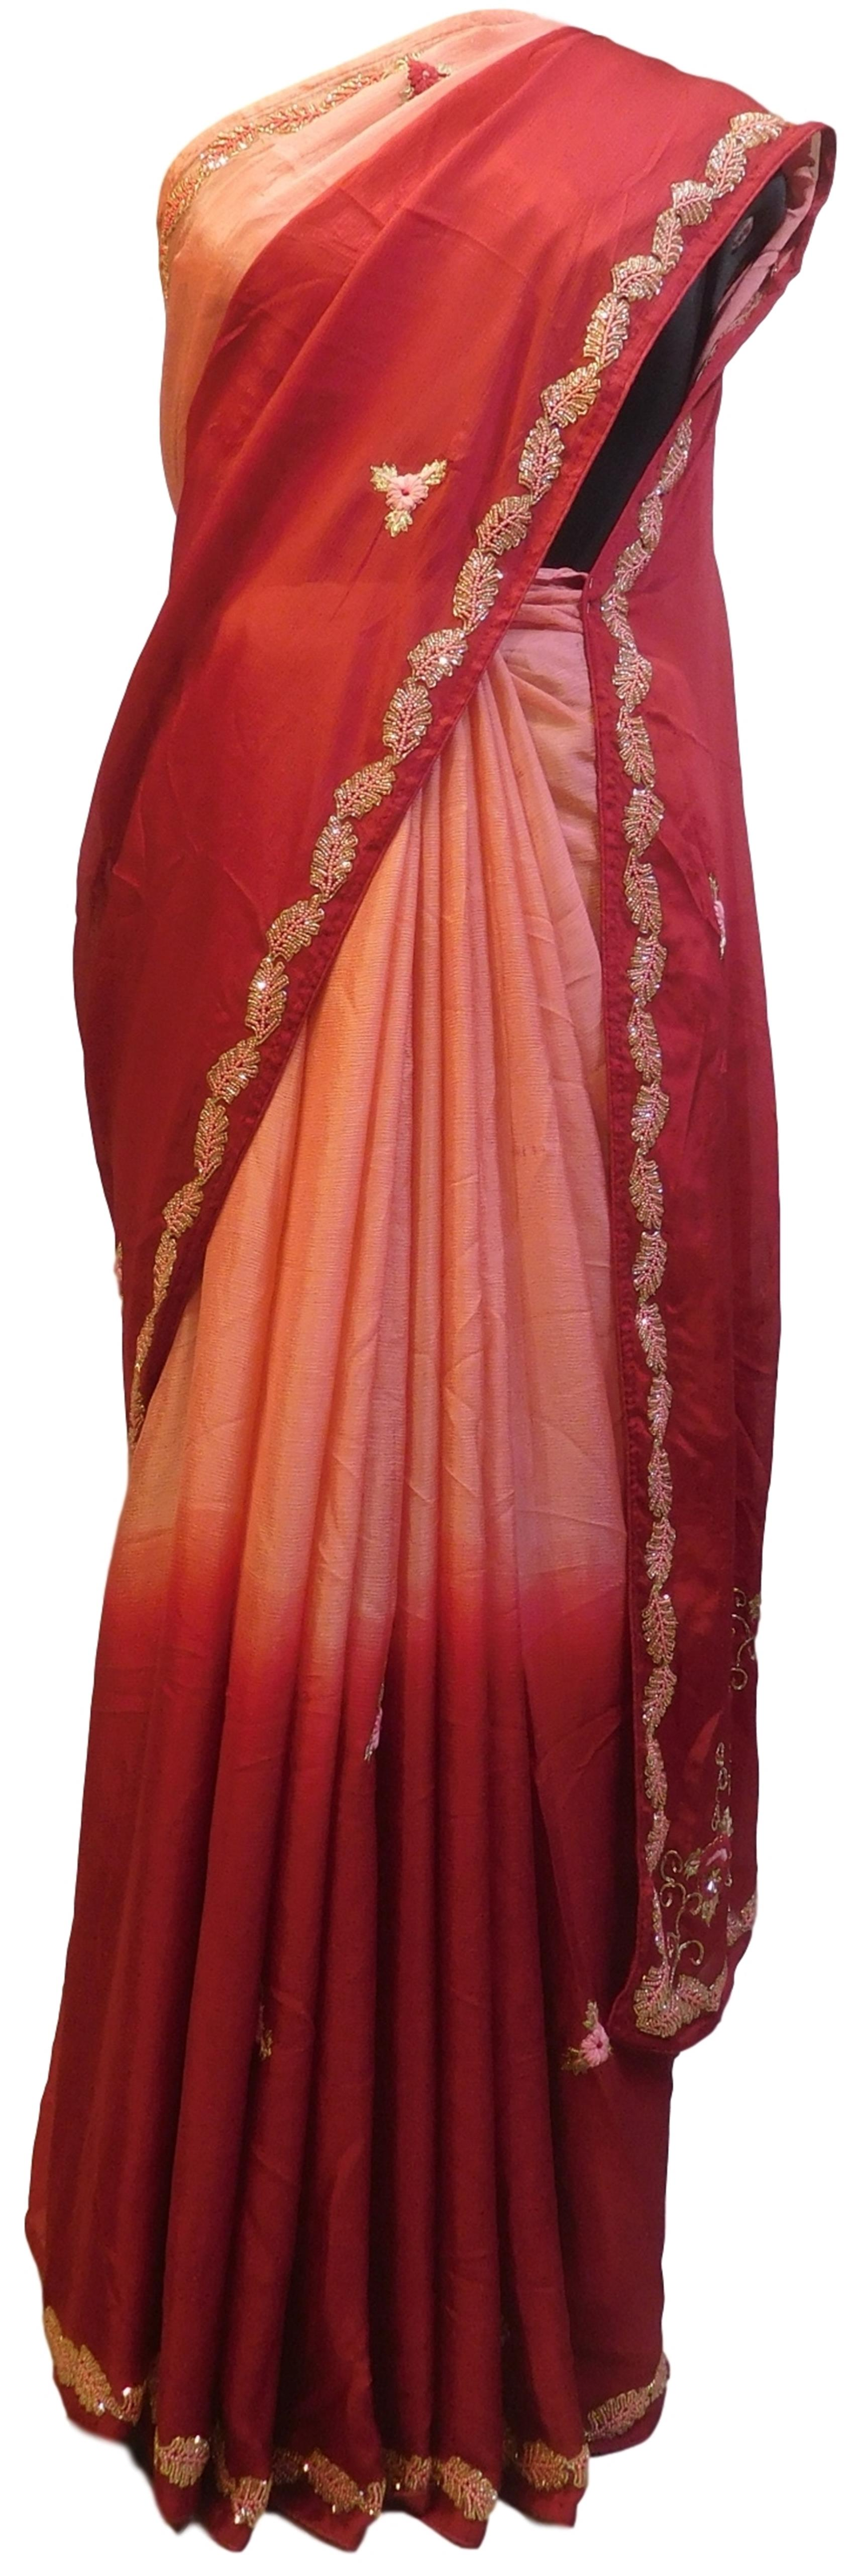 Pink & Red Designer PartyWear Bridal Crepe (Chinon) Beads Zari Thread Stone Pearl Hand Embroidery Work Wedding Saree Sari E395